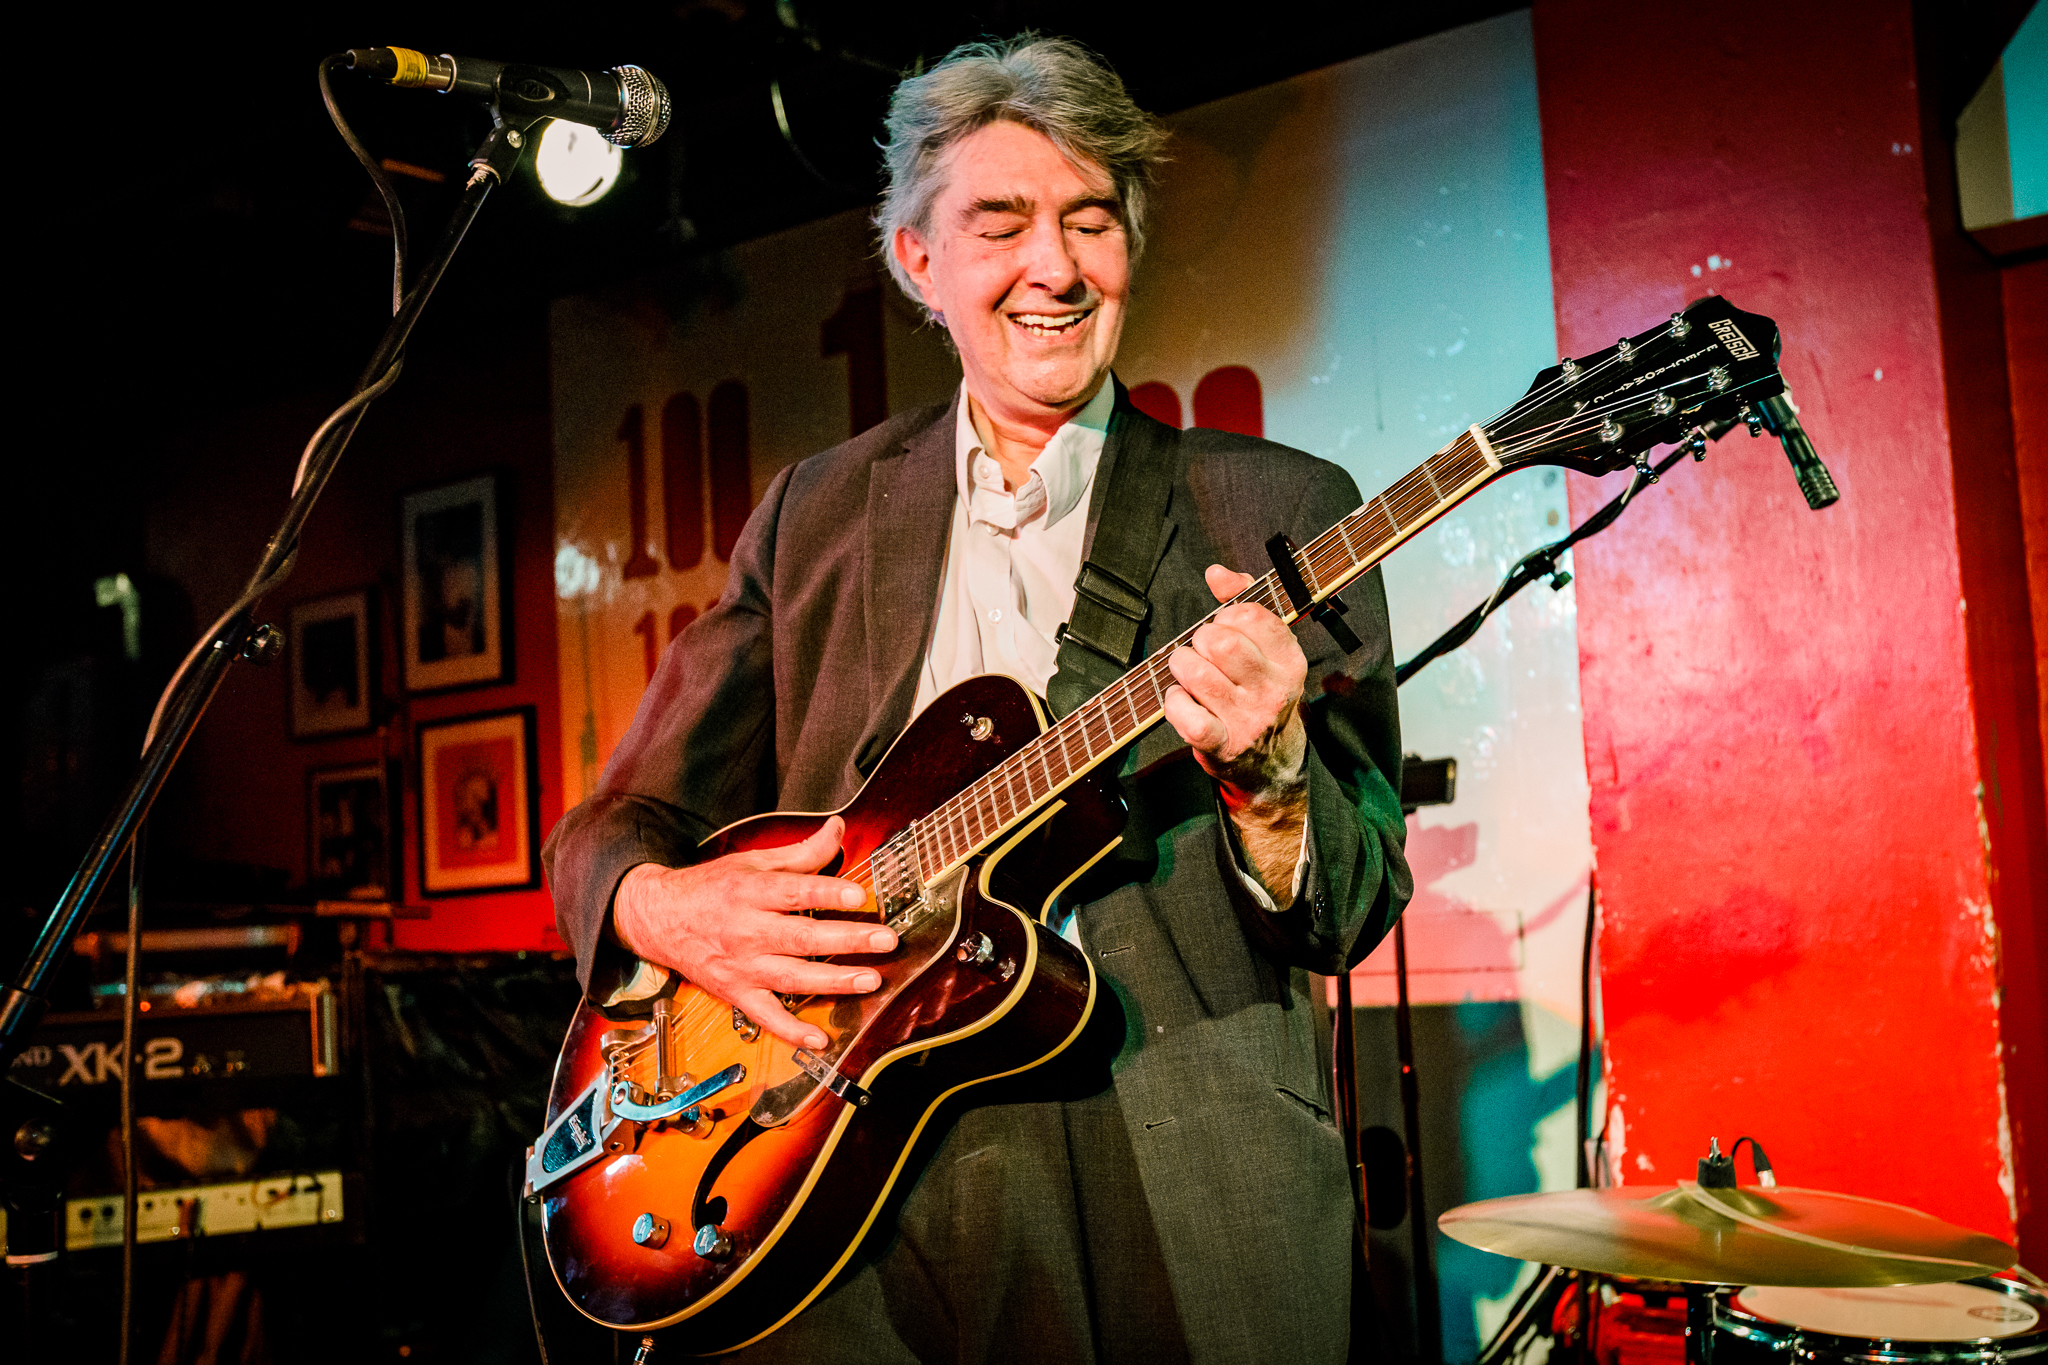 The Jazz Butcher performing at the 100 Club in London, England - 3/1/2018 (photo by Matt Condon / @arcane93)